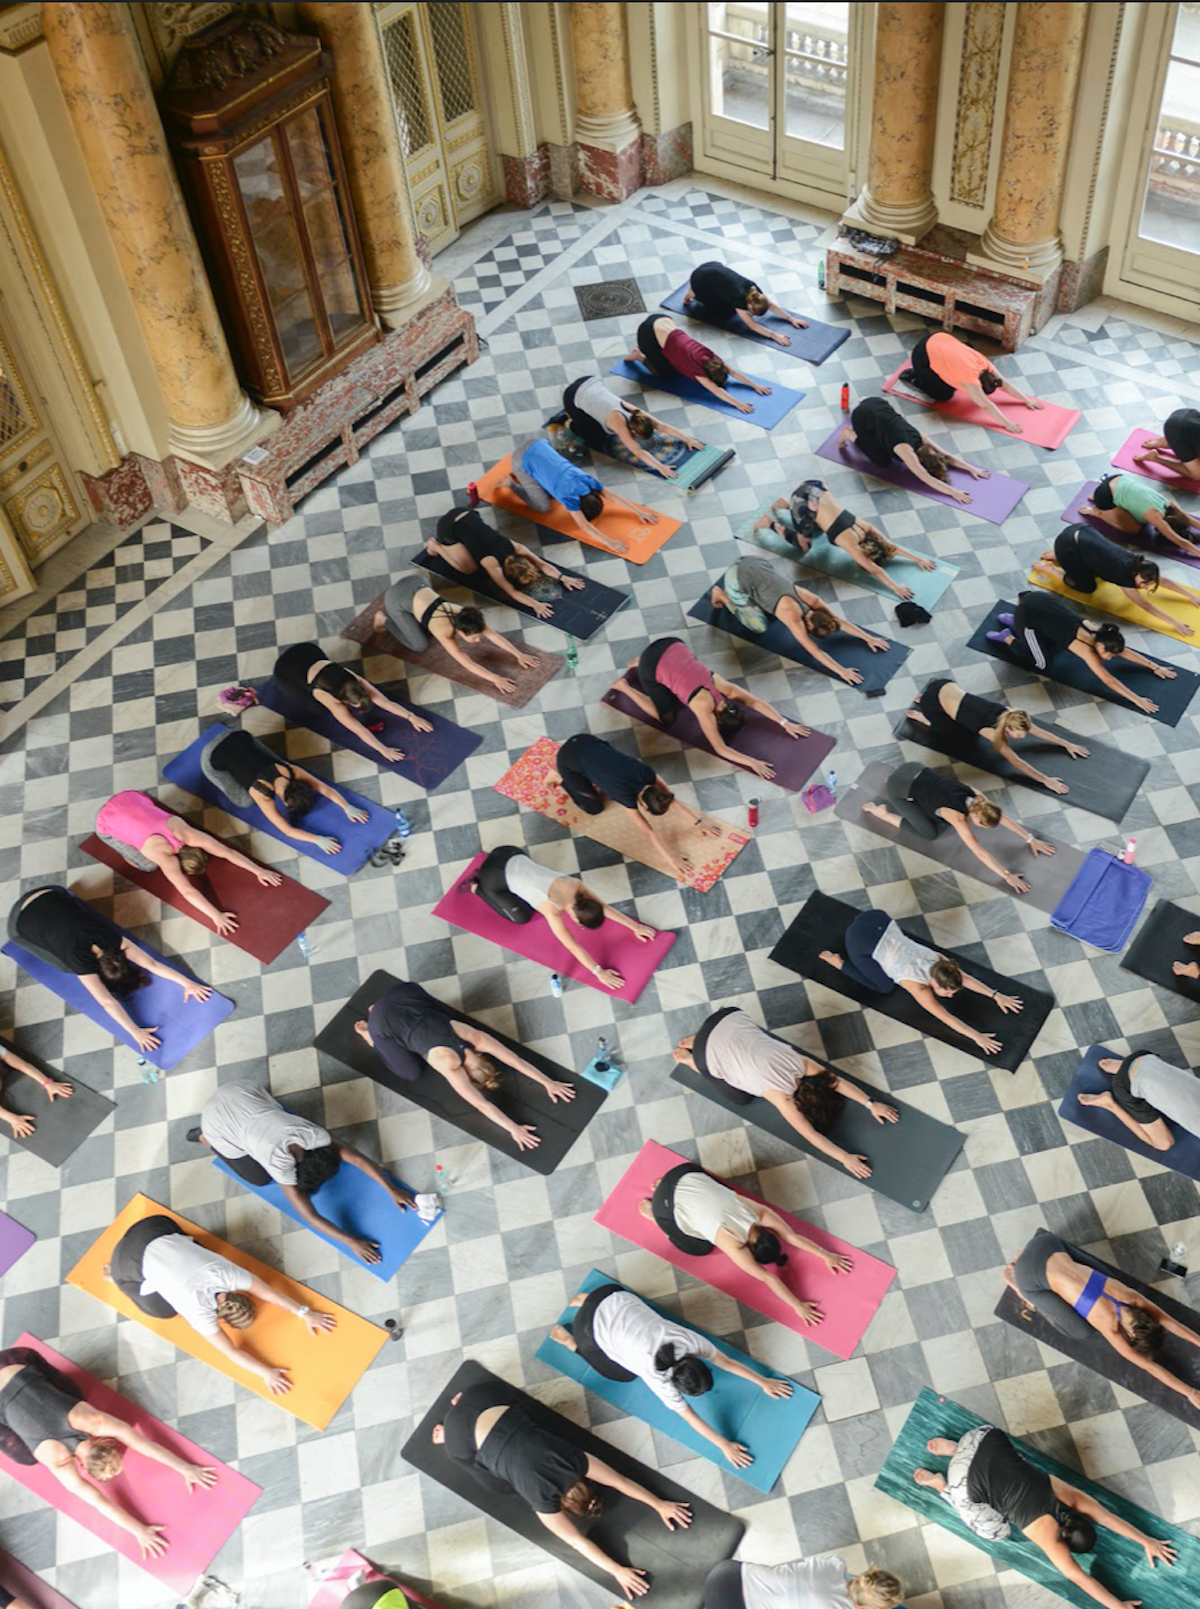 Oly Be Paris Asanas Cours Collectif détente vinyasa iyengar hatha